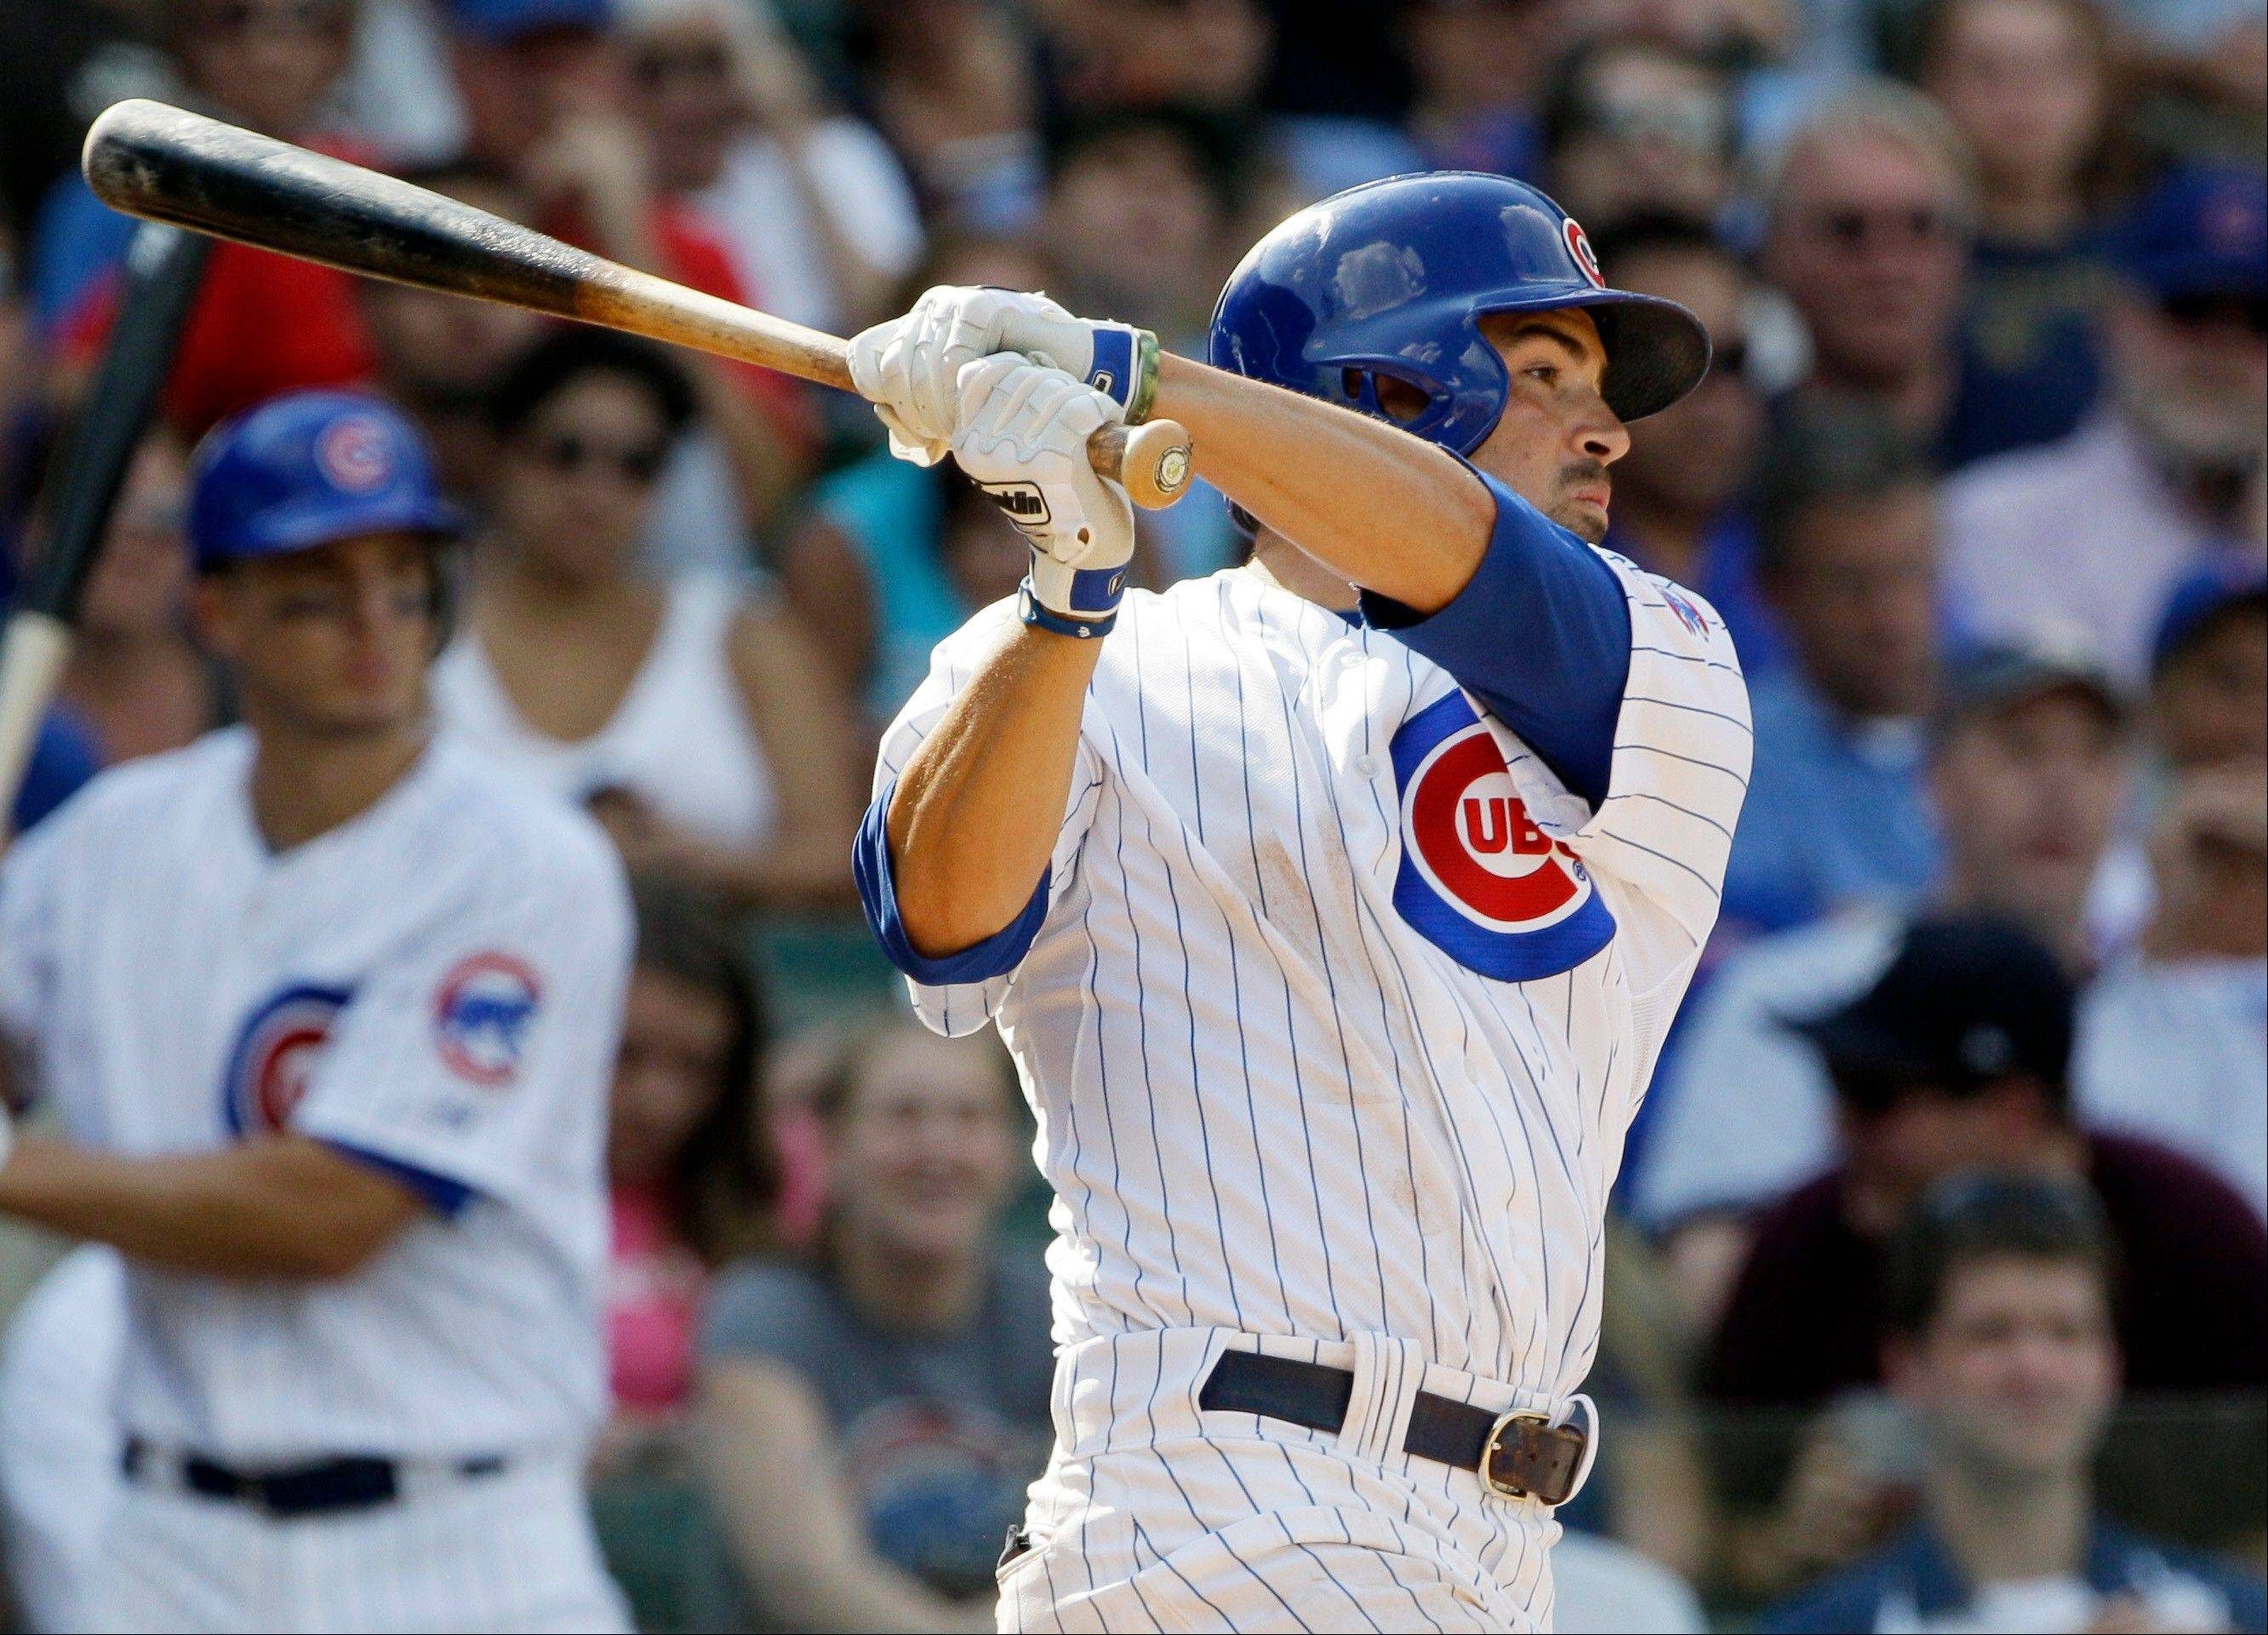 It's dependable DeJesus for now in center for Cubs